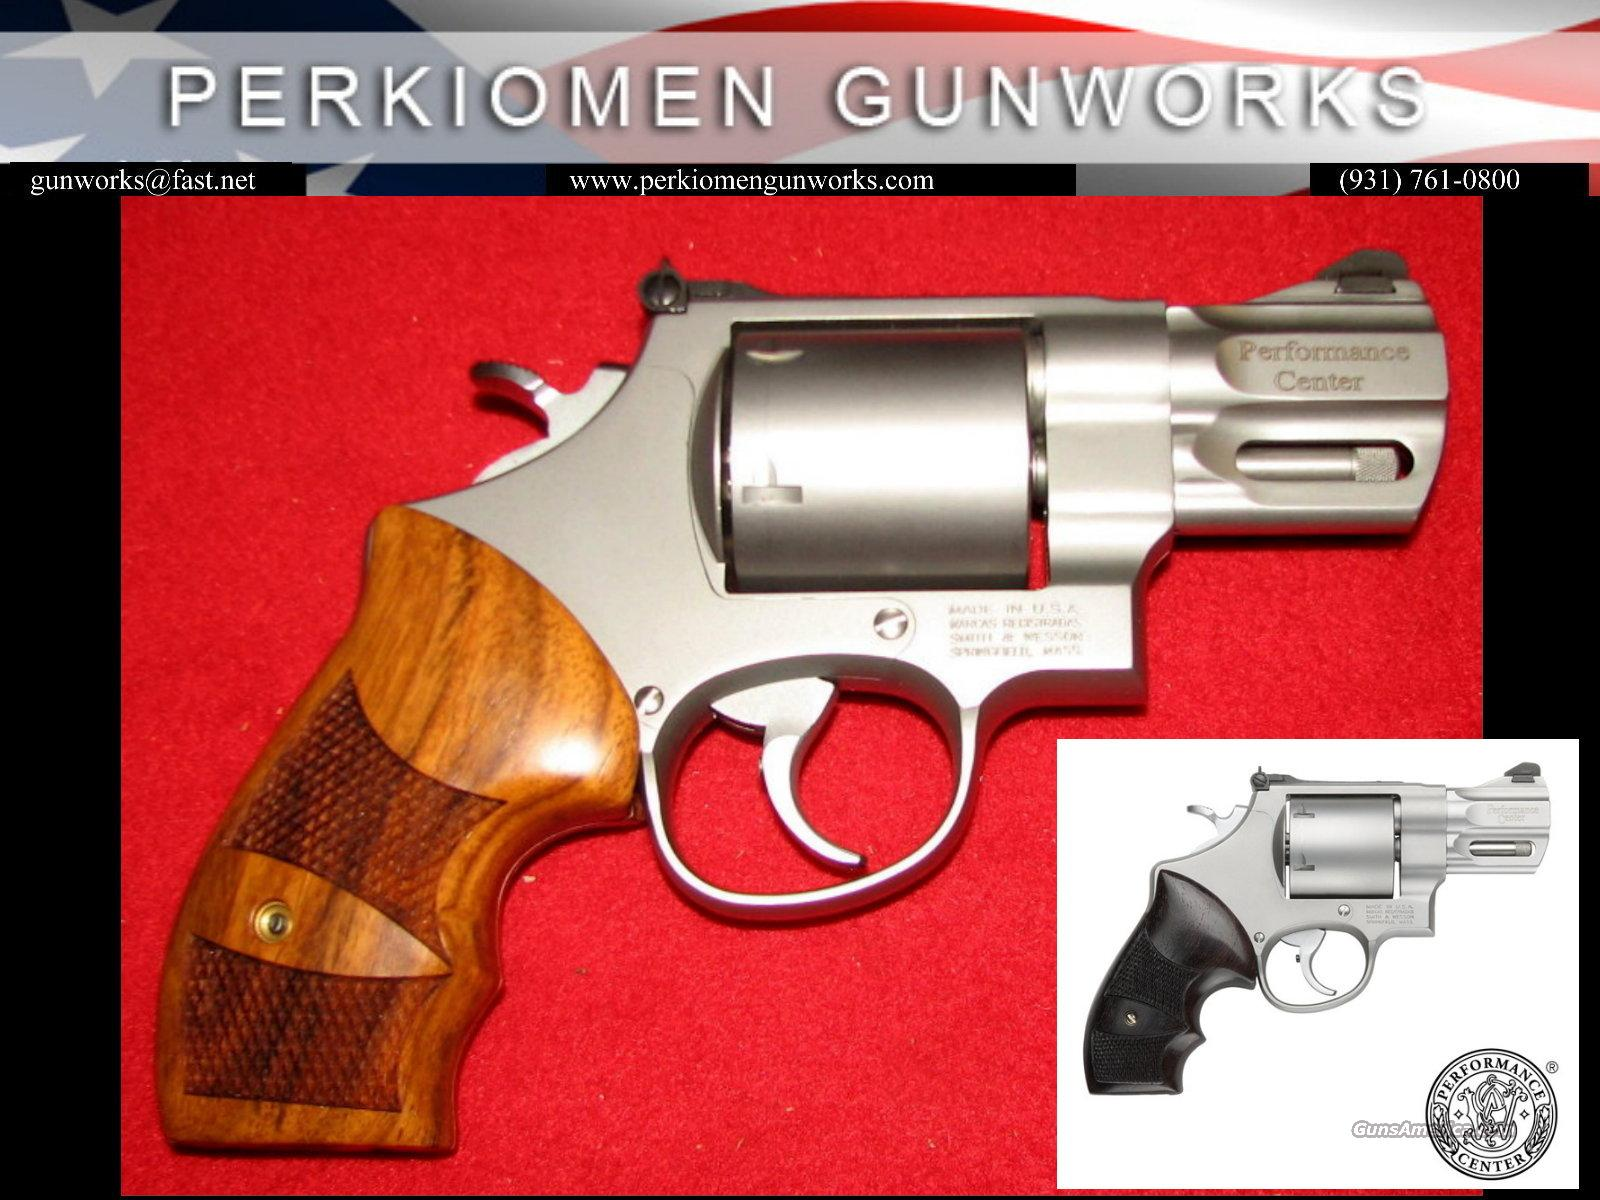 629 PC, 2.6 Inch, 44mag Performance Center Gun  Guns > Pistols > Smith & Wesson Revolvers > Performance Center